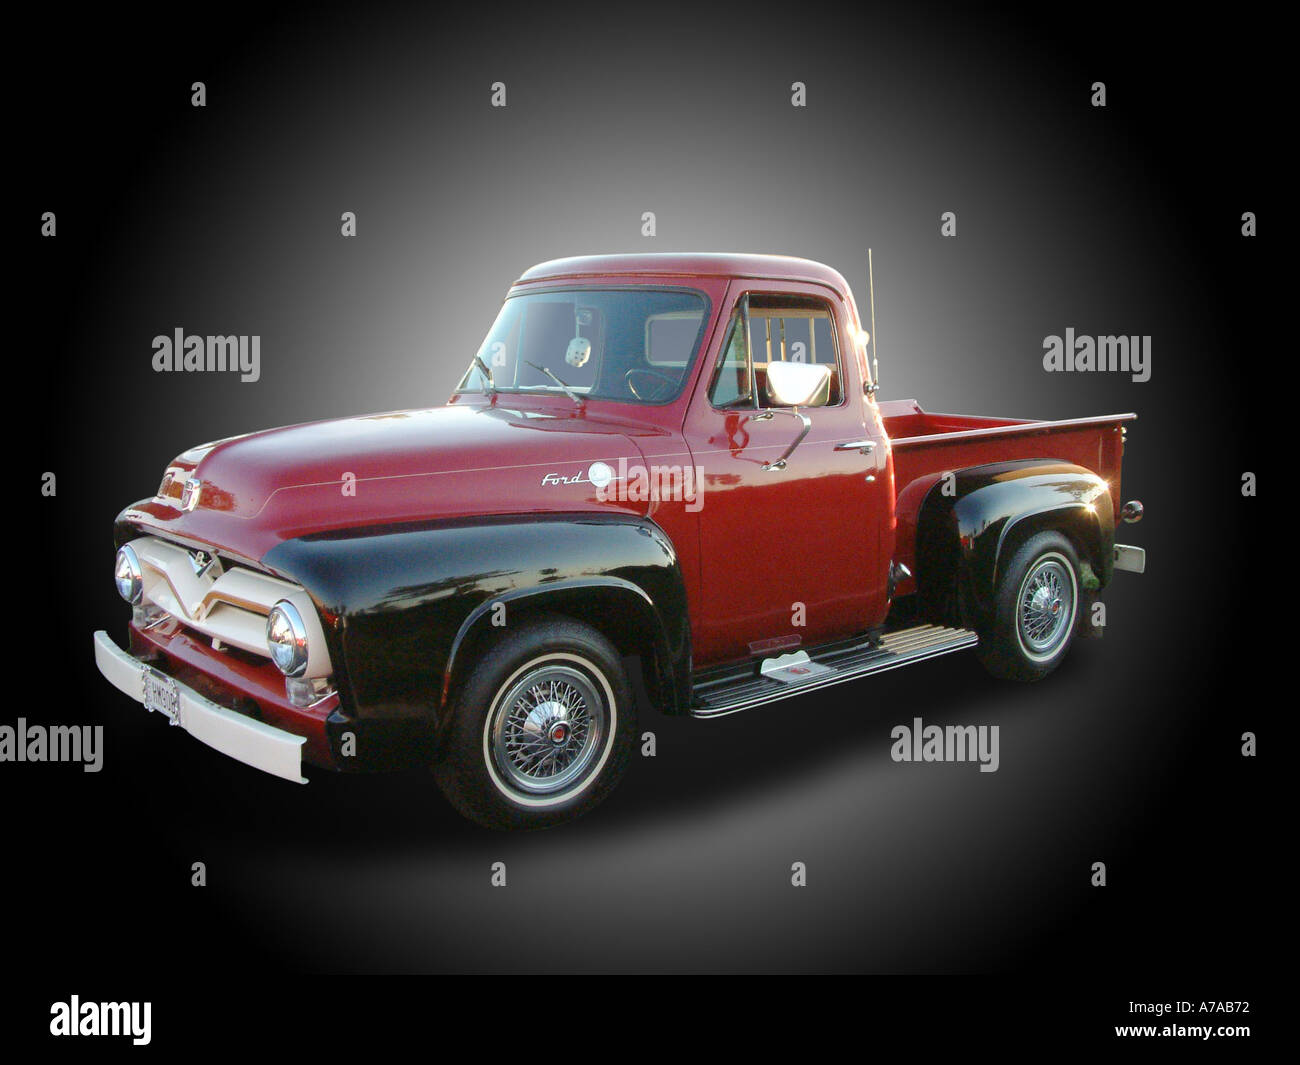 1955 Ford Truck Stock Photos Images Alamy F100 Rear Bumper Pickup Hm90b Image